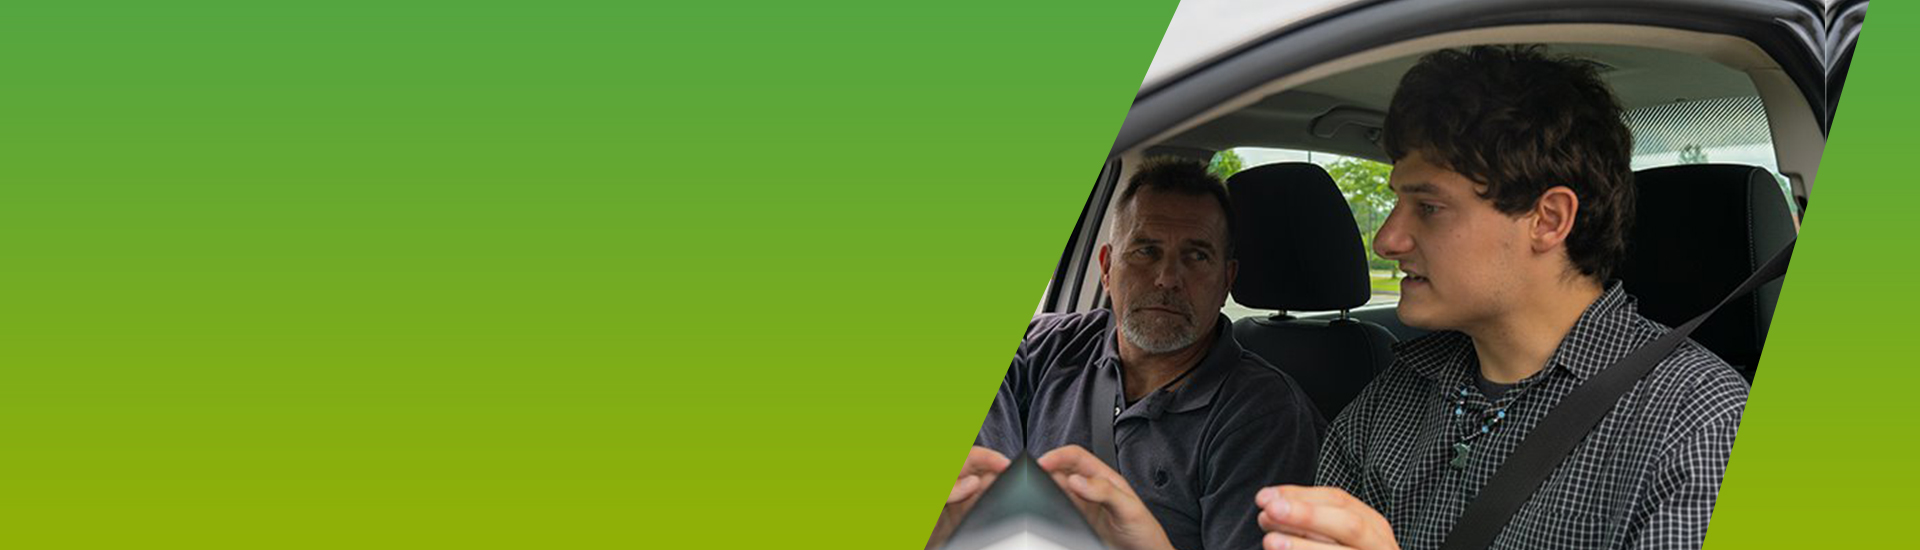 driving-with-asd-banner1